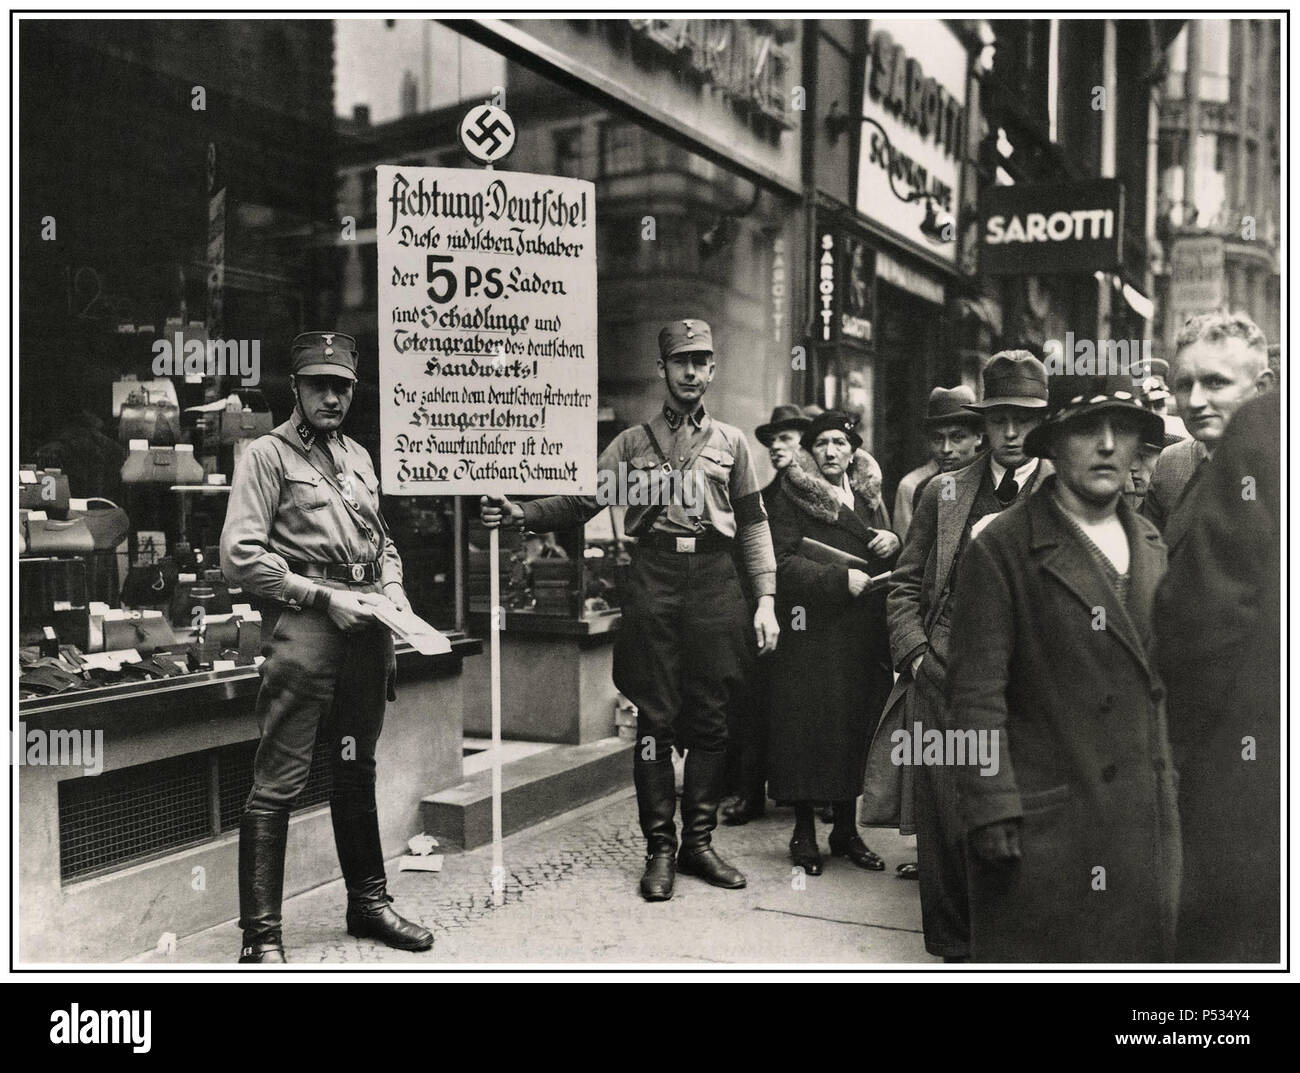 """Vintage B&W anti-Jewish racist inflammatory image of SA Sturmabteilung or """"Brownshirts"""" storm detachment members calling for the boycott of Jewish shops in Friedrichstraße, Berlin; April 1, 1933. The sign with Nazi swastika emblem says: """"Germans, Attention! This shop is owned by Jews. Jews damage the German economy and pay their German employees starvation wages. The main owner is the Jew Nathan  Schmidt."""" - Stock Image"""